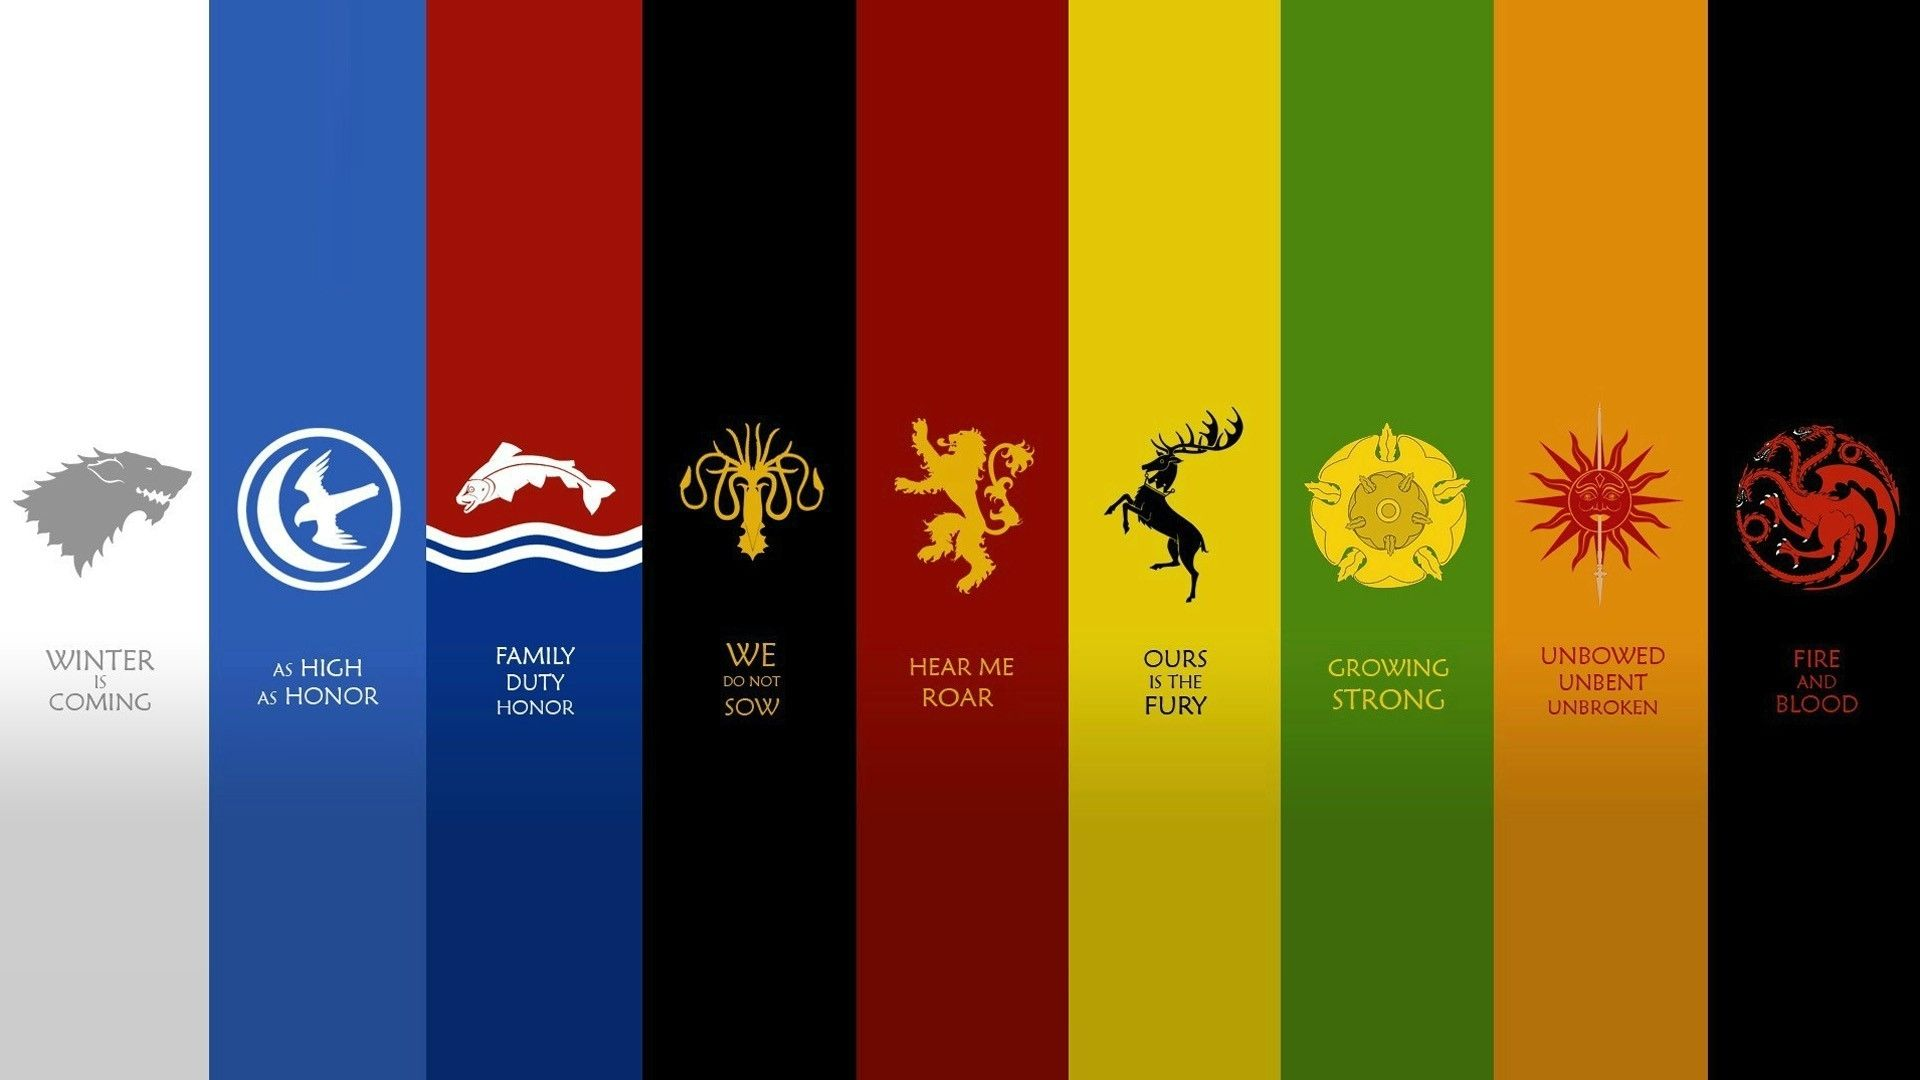 Preview Resize And Download Download Hd Wallpapers Game Of Thrones Houses Game Of Thrones Fans Game Of Thrones Sigils